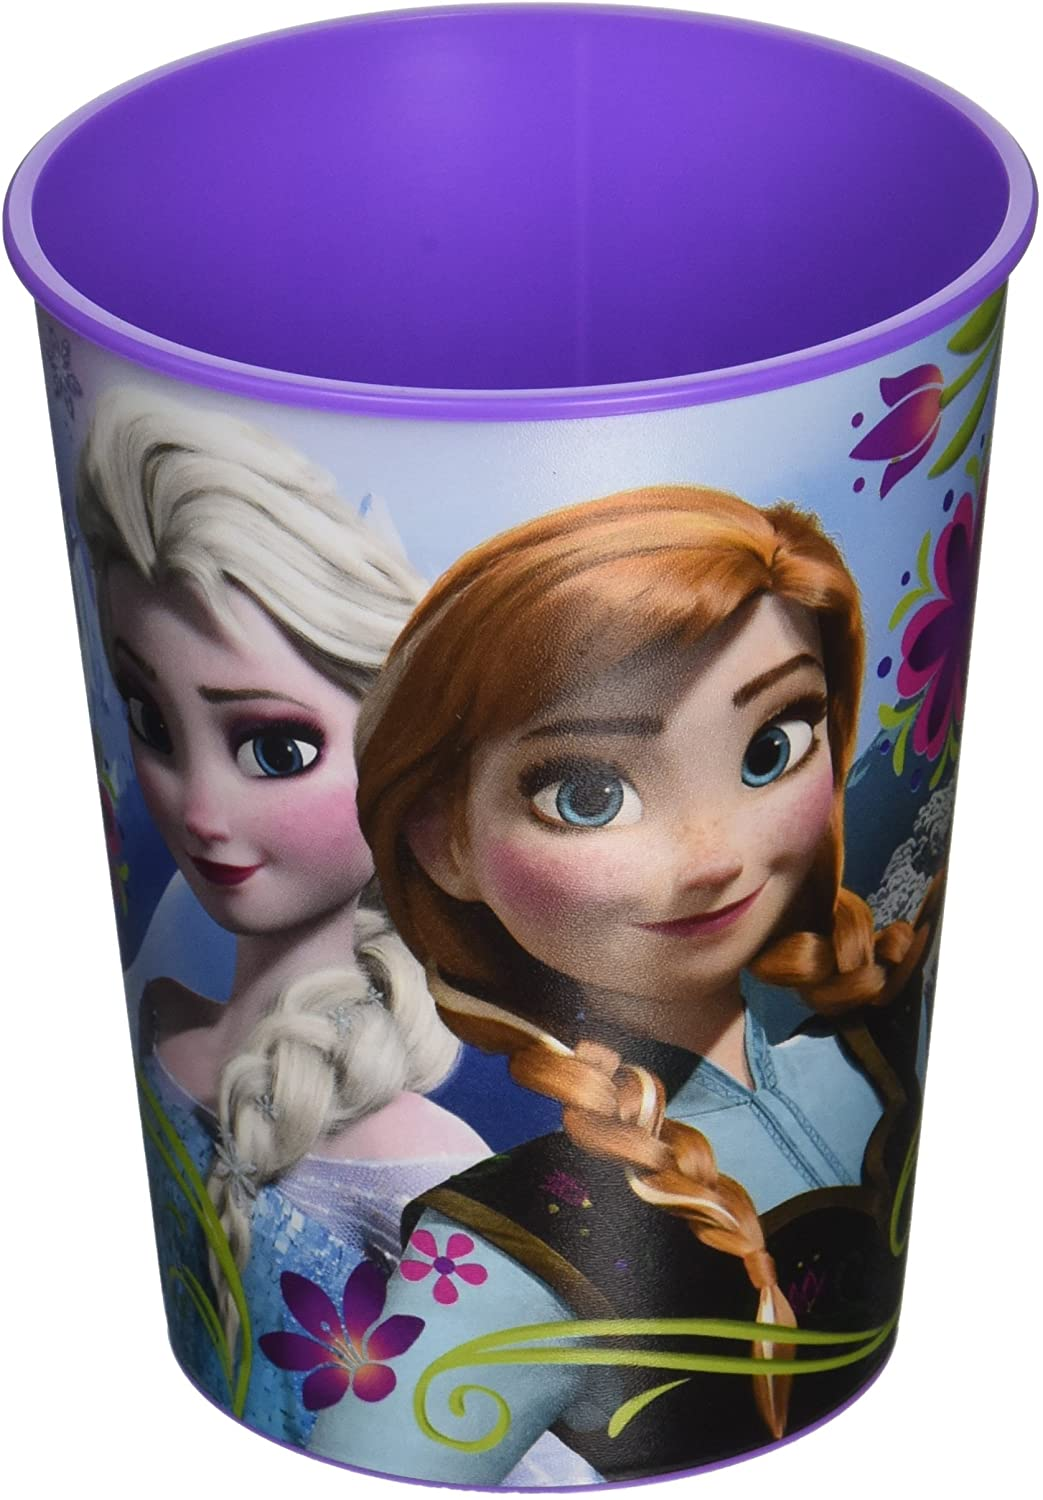 Disney Frozen Plastic Cup 16 oz [12 Piece(s) Pack] - 421416